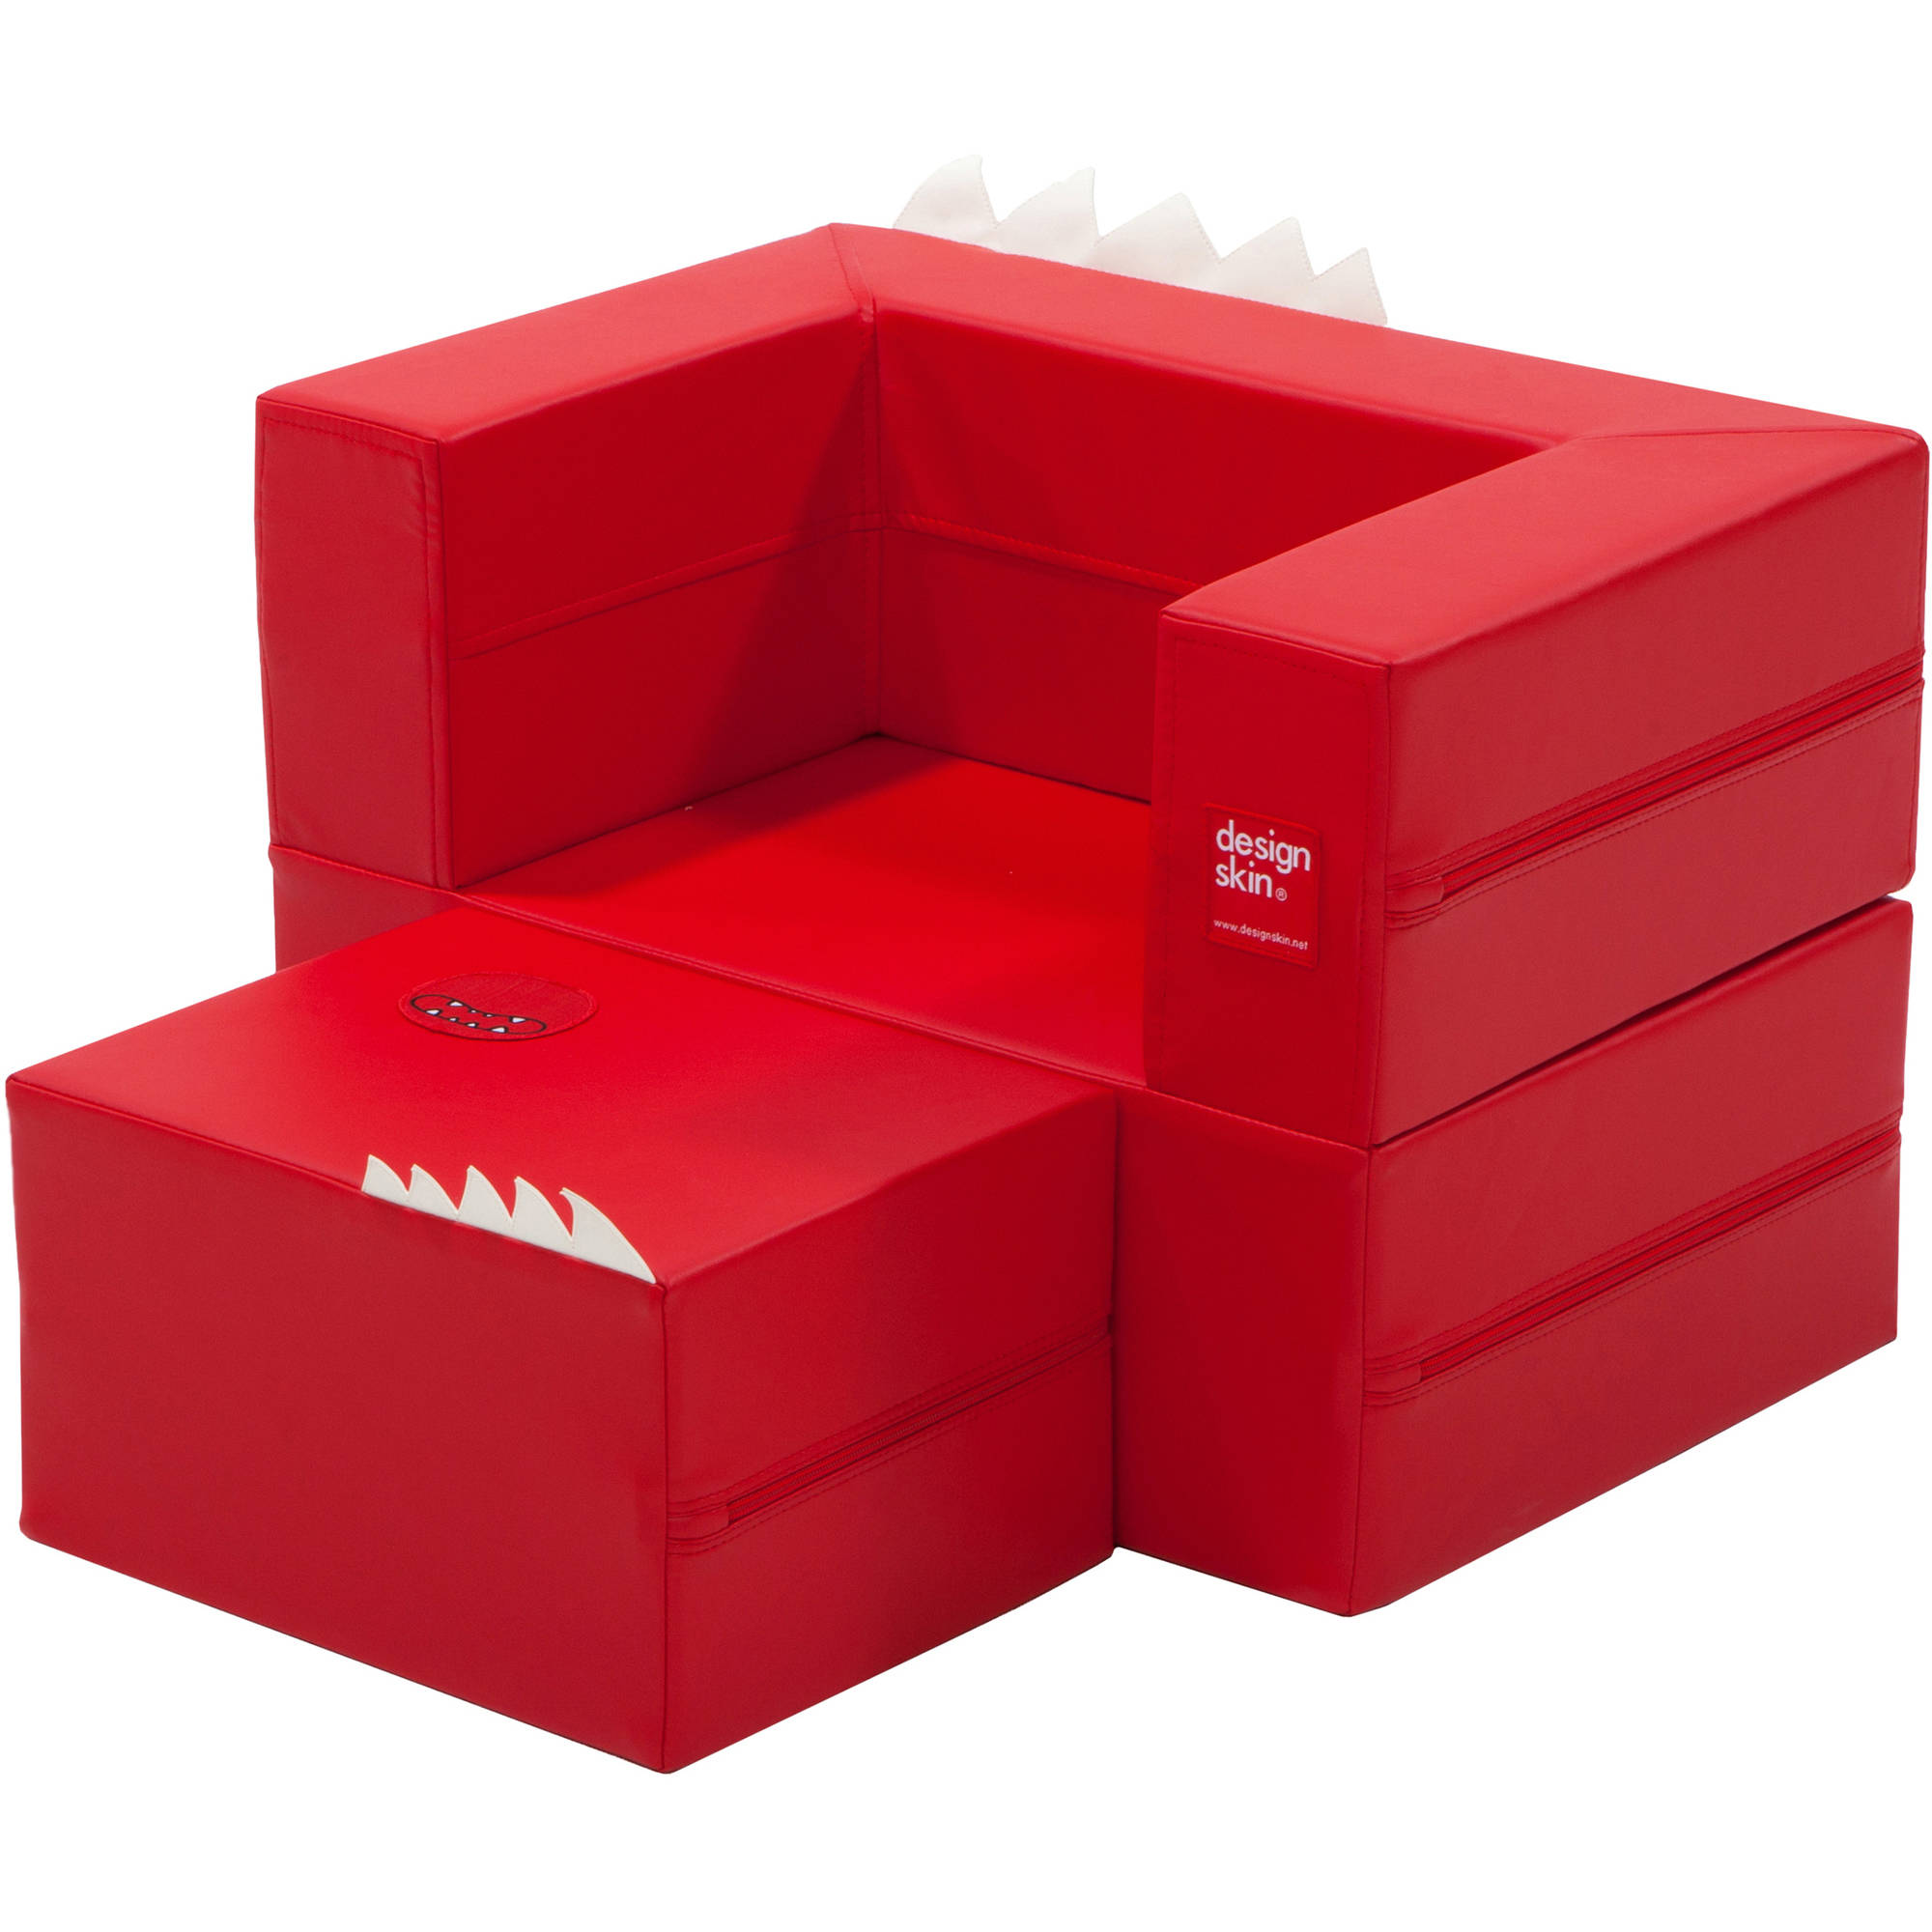 Cake Sofa Transformable Play Furniture for Kids, Red